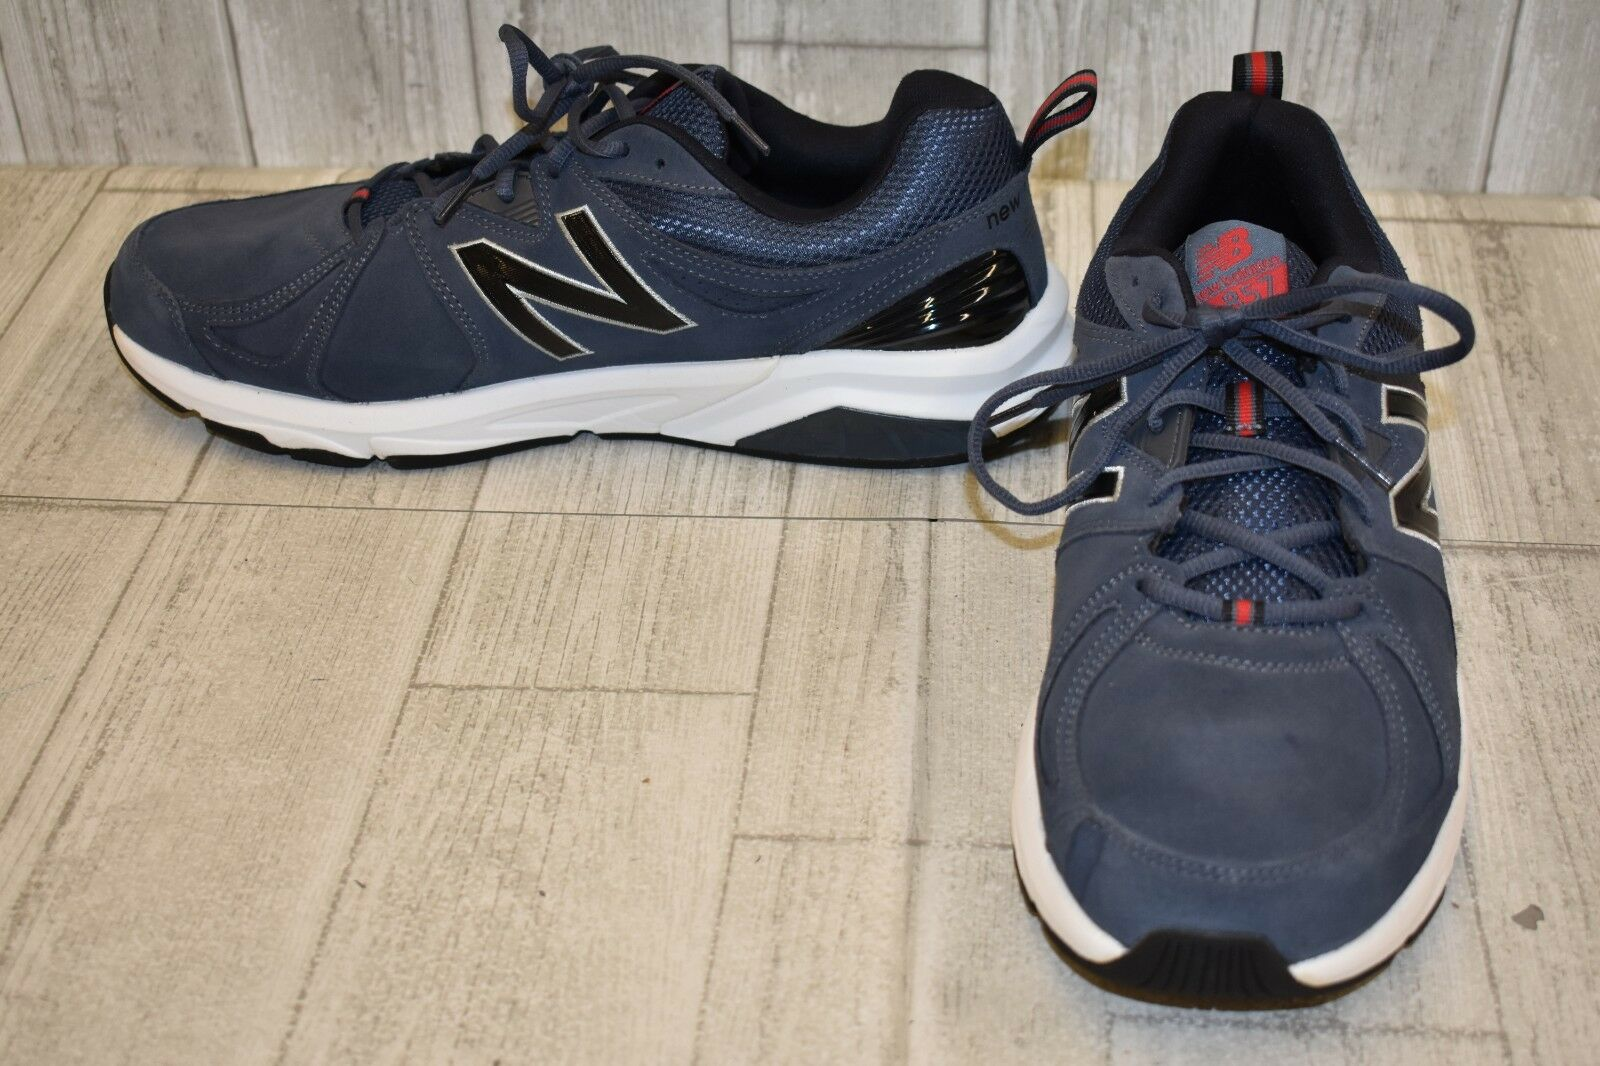 New New New Balance 857v2 Cross Training scarpe, Uomo Dimensione 14D, Charcoal NEW 4ed5f5